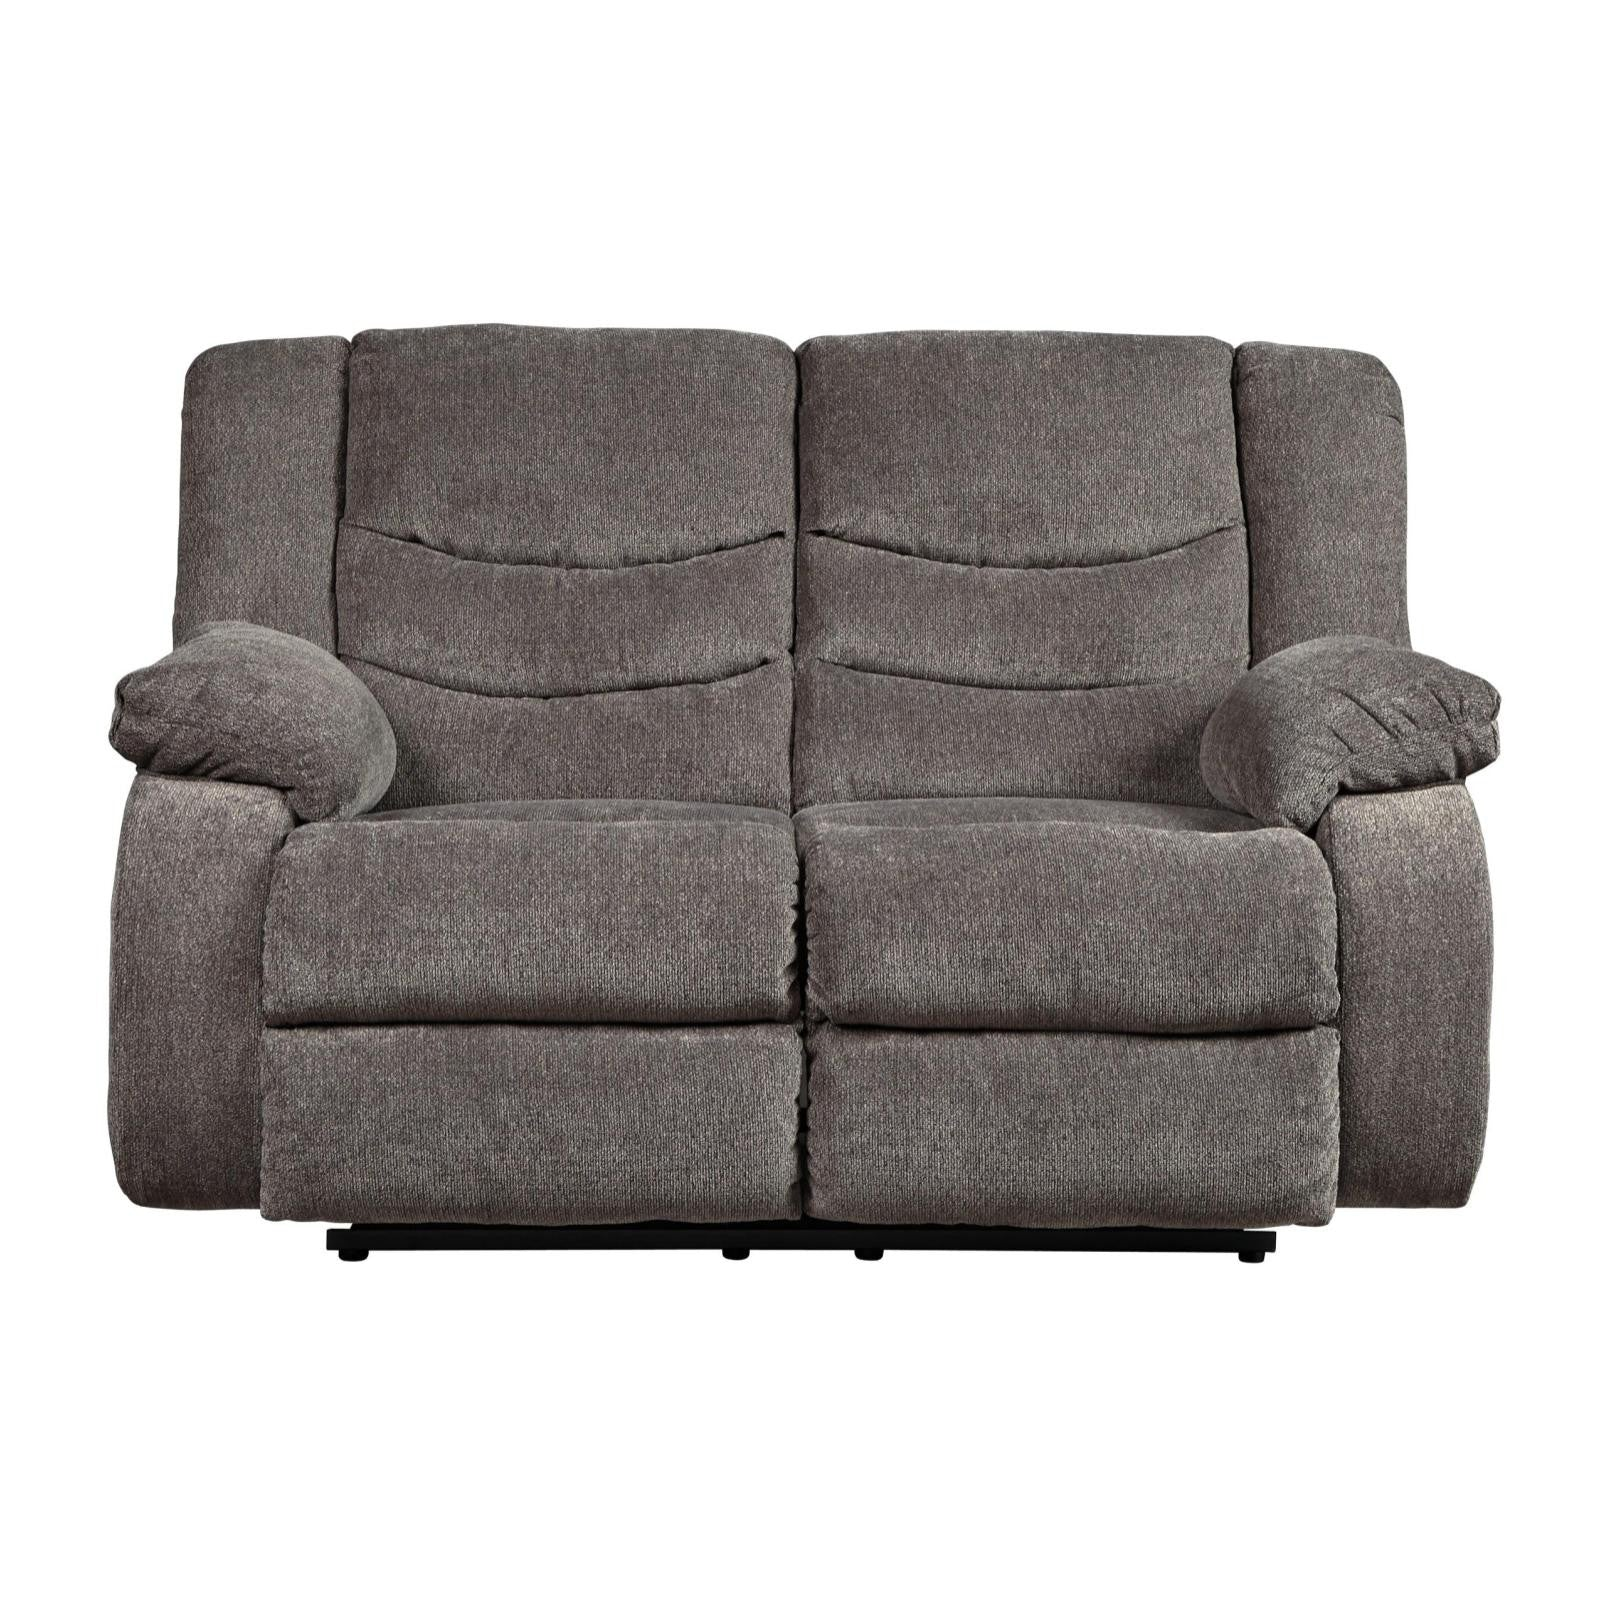 recliners charles console hugger sofa recliner w rv amazon recpro com automotive dp wall zero twin chestnut double